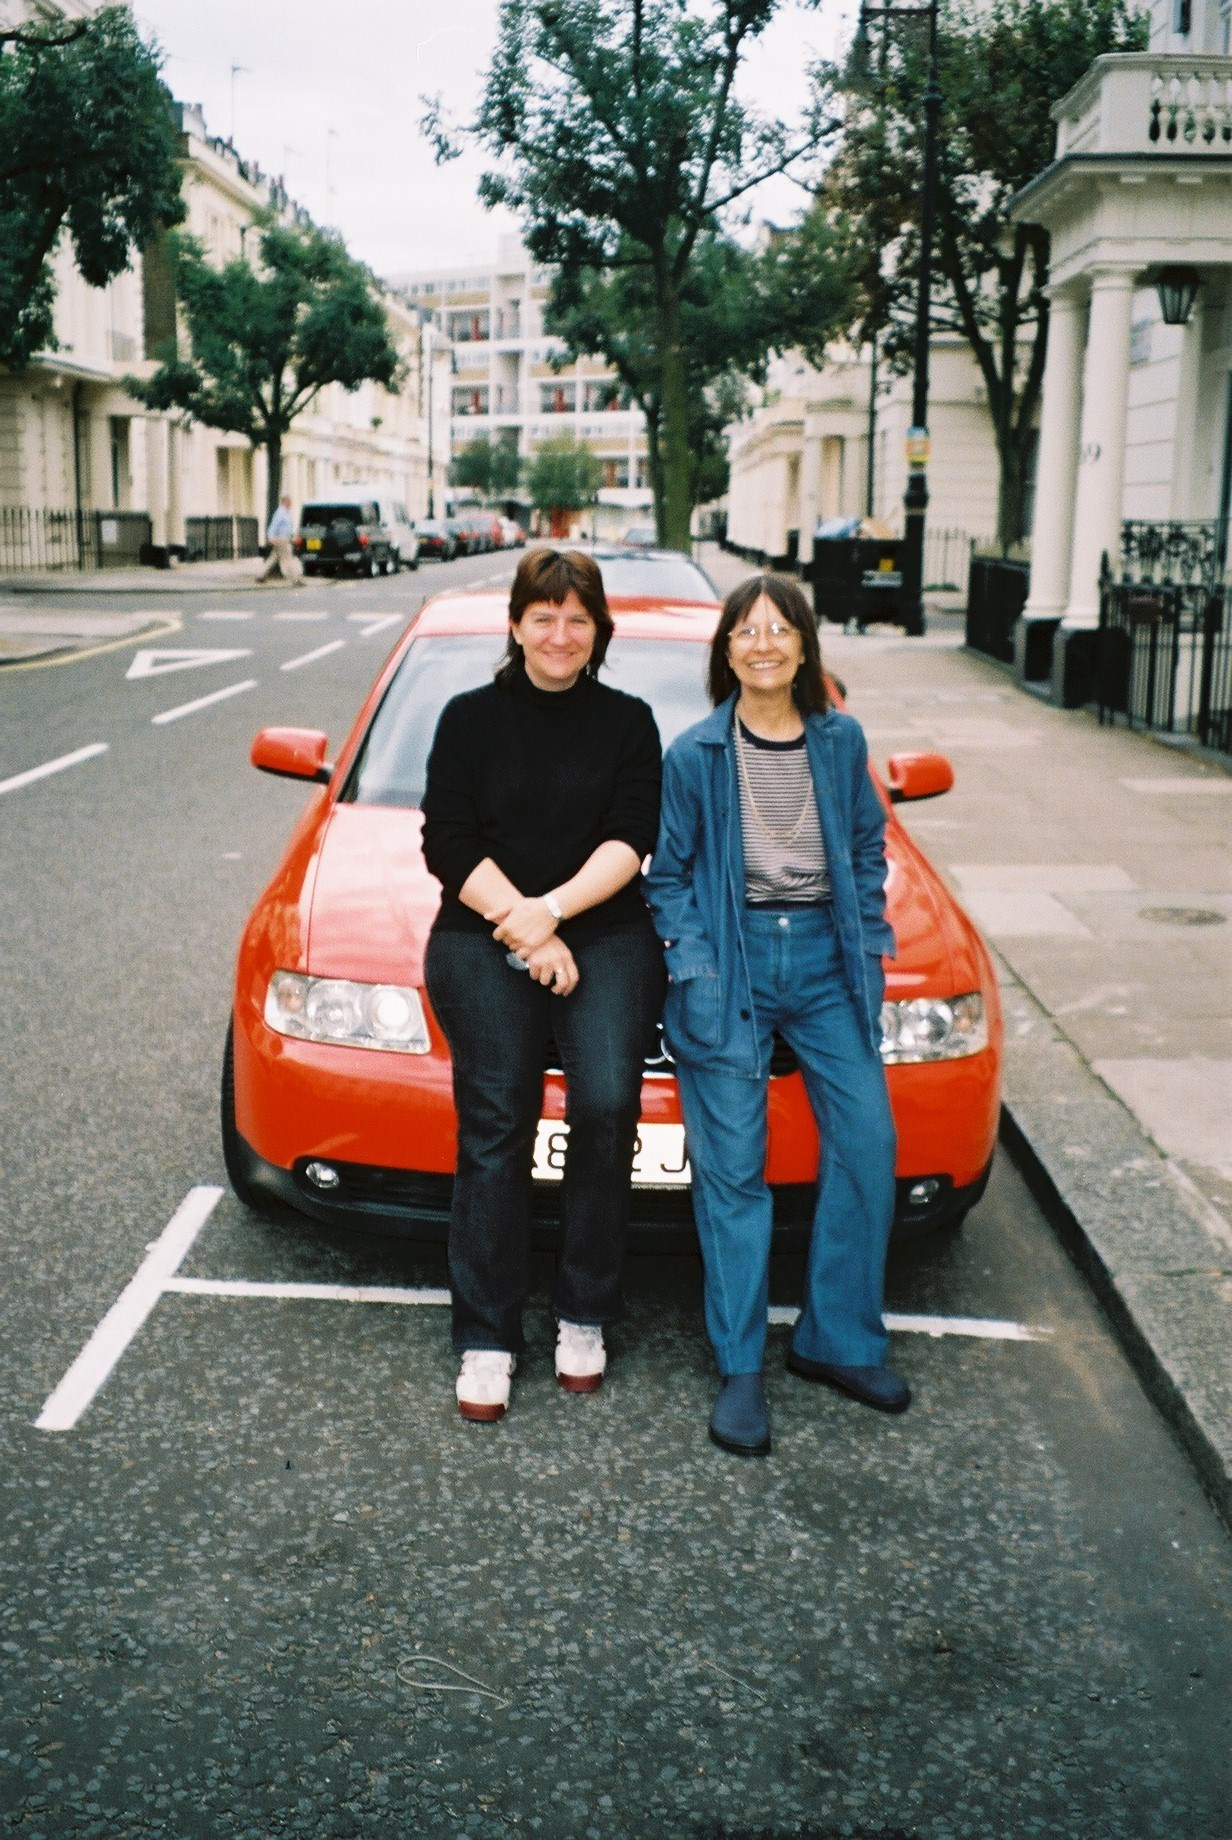 Juliet and Susie/Ma. 2005